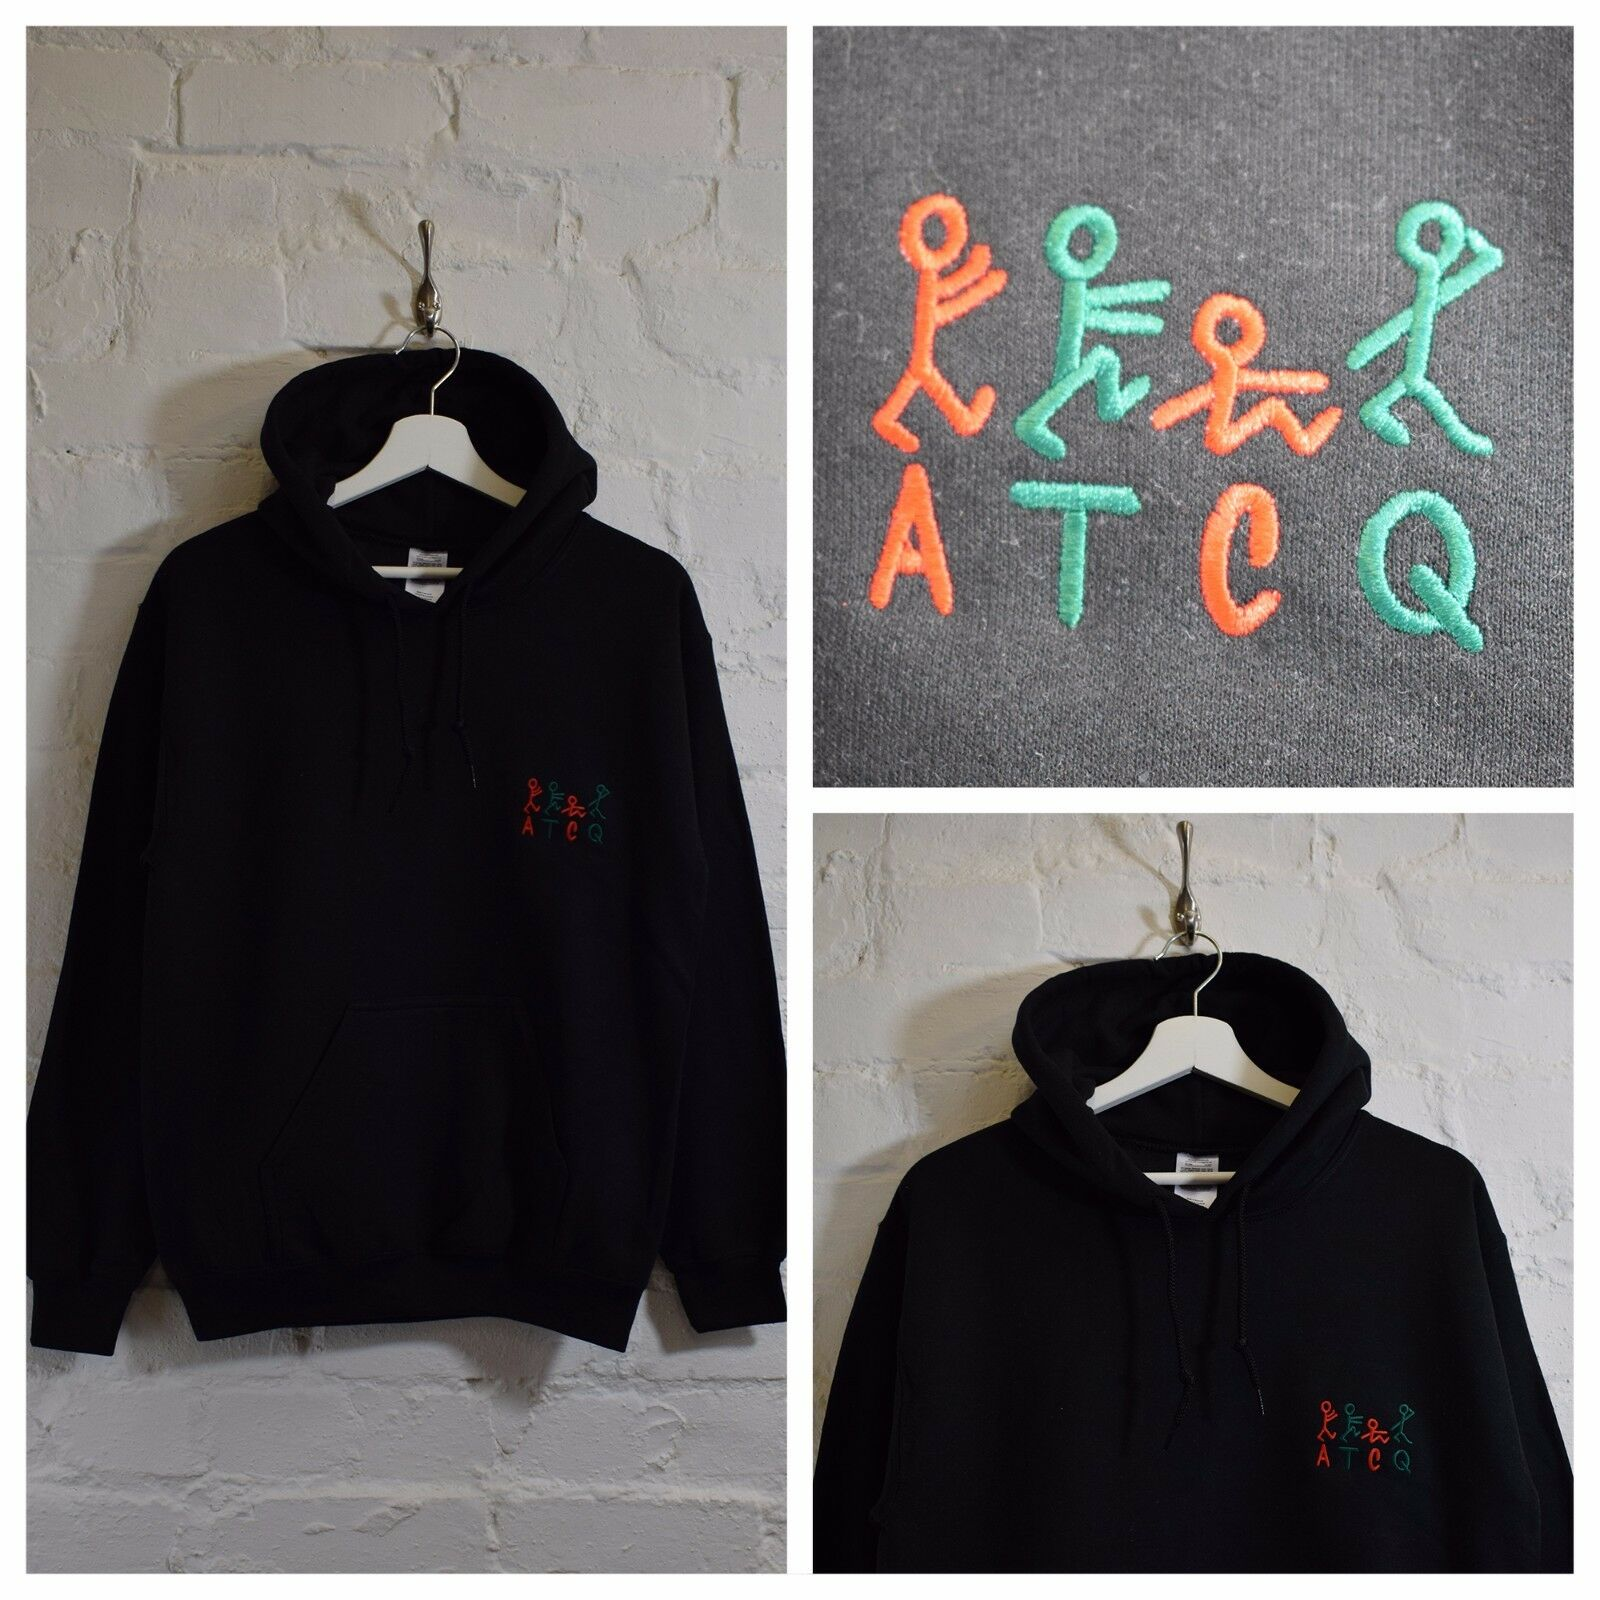 Actual FACT ATCQ Tribe Called Quest Kapuze schwarzes Sweatshirt